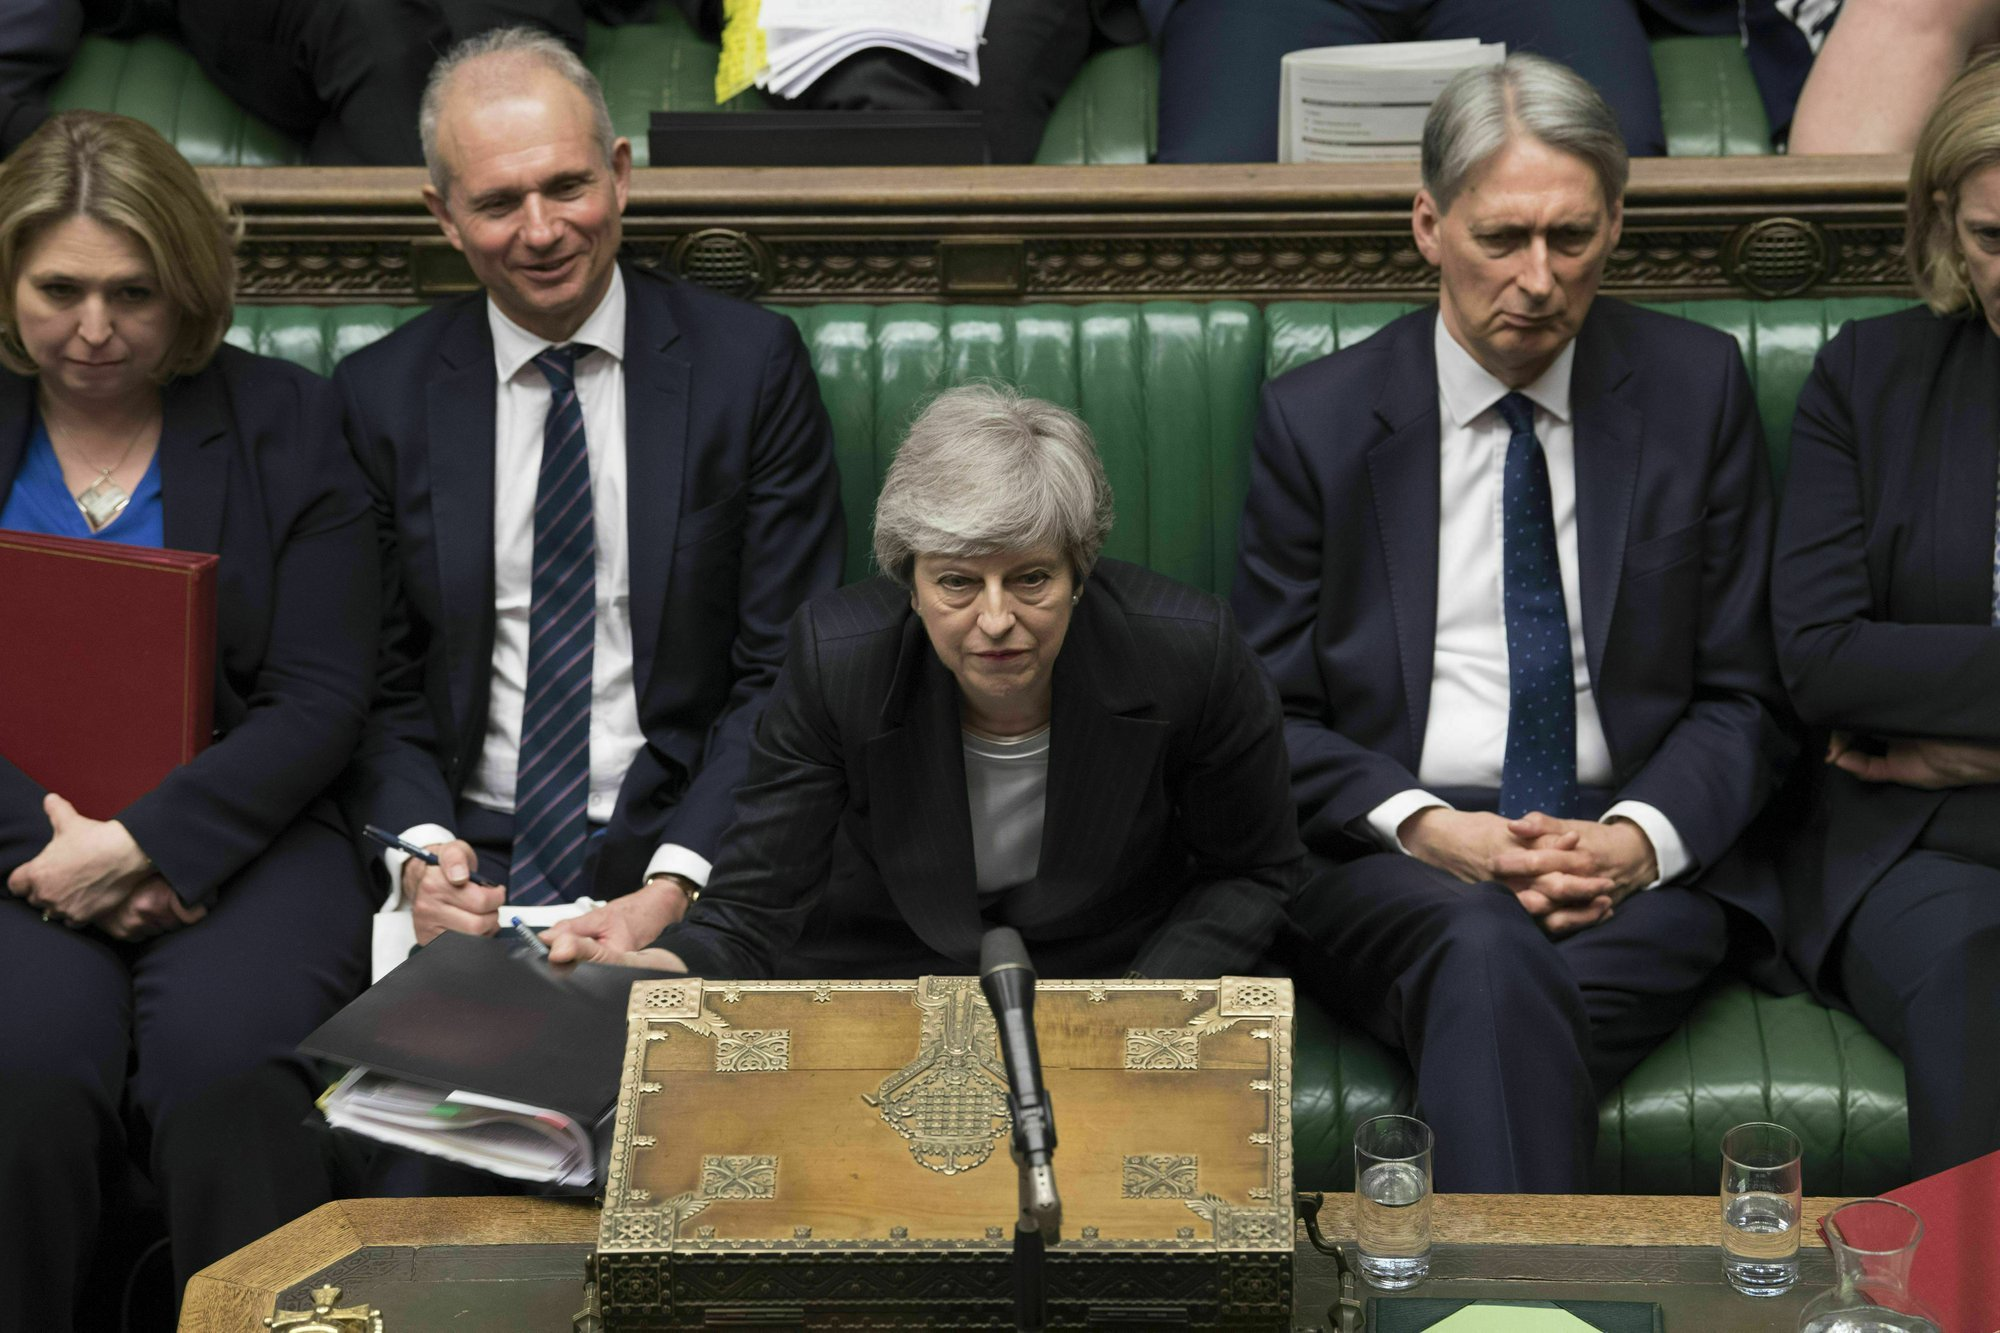 Theresa May speaks during Prime Minister's Questions in the House of Commons, London, on May 22. —AP